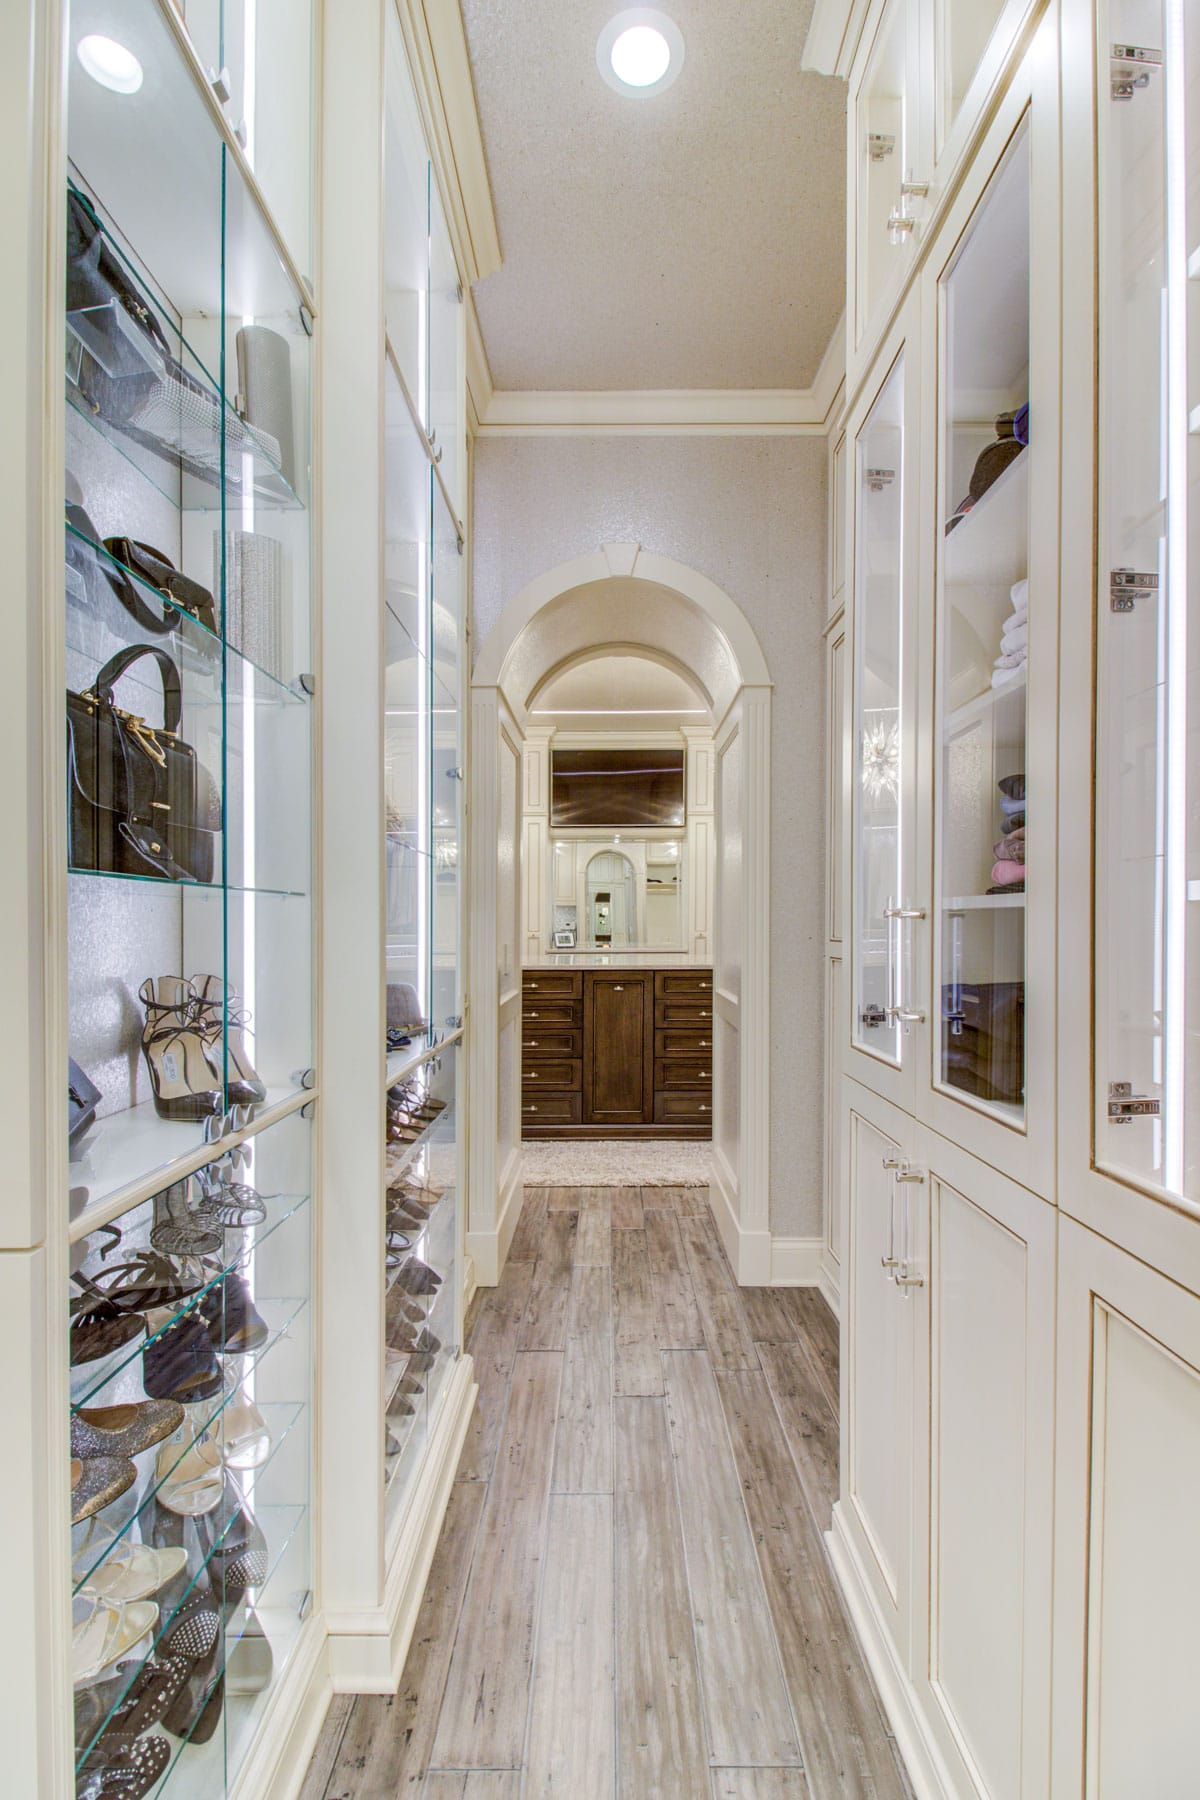 Master suite reatil showcase display for handbags hall way purse closet